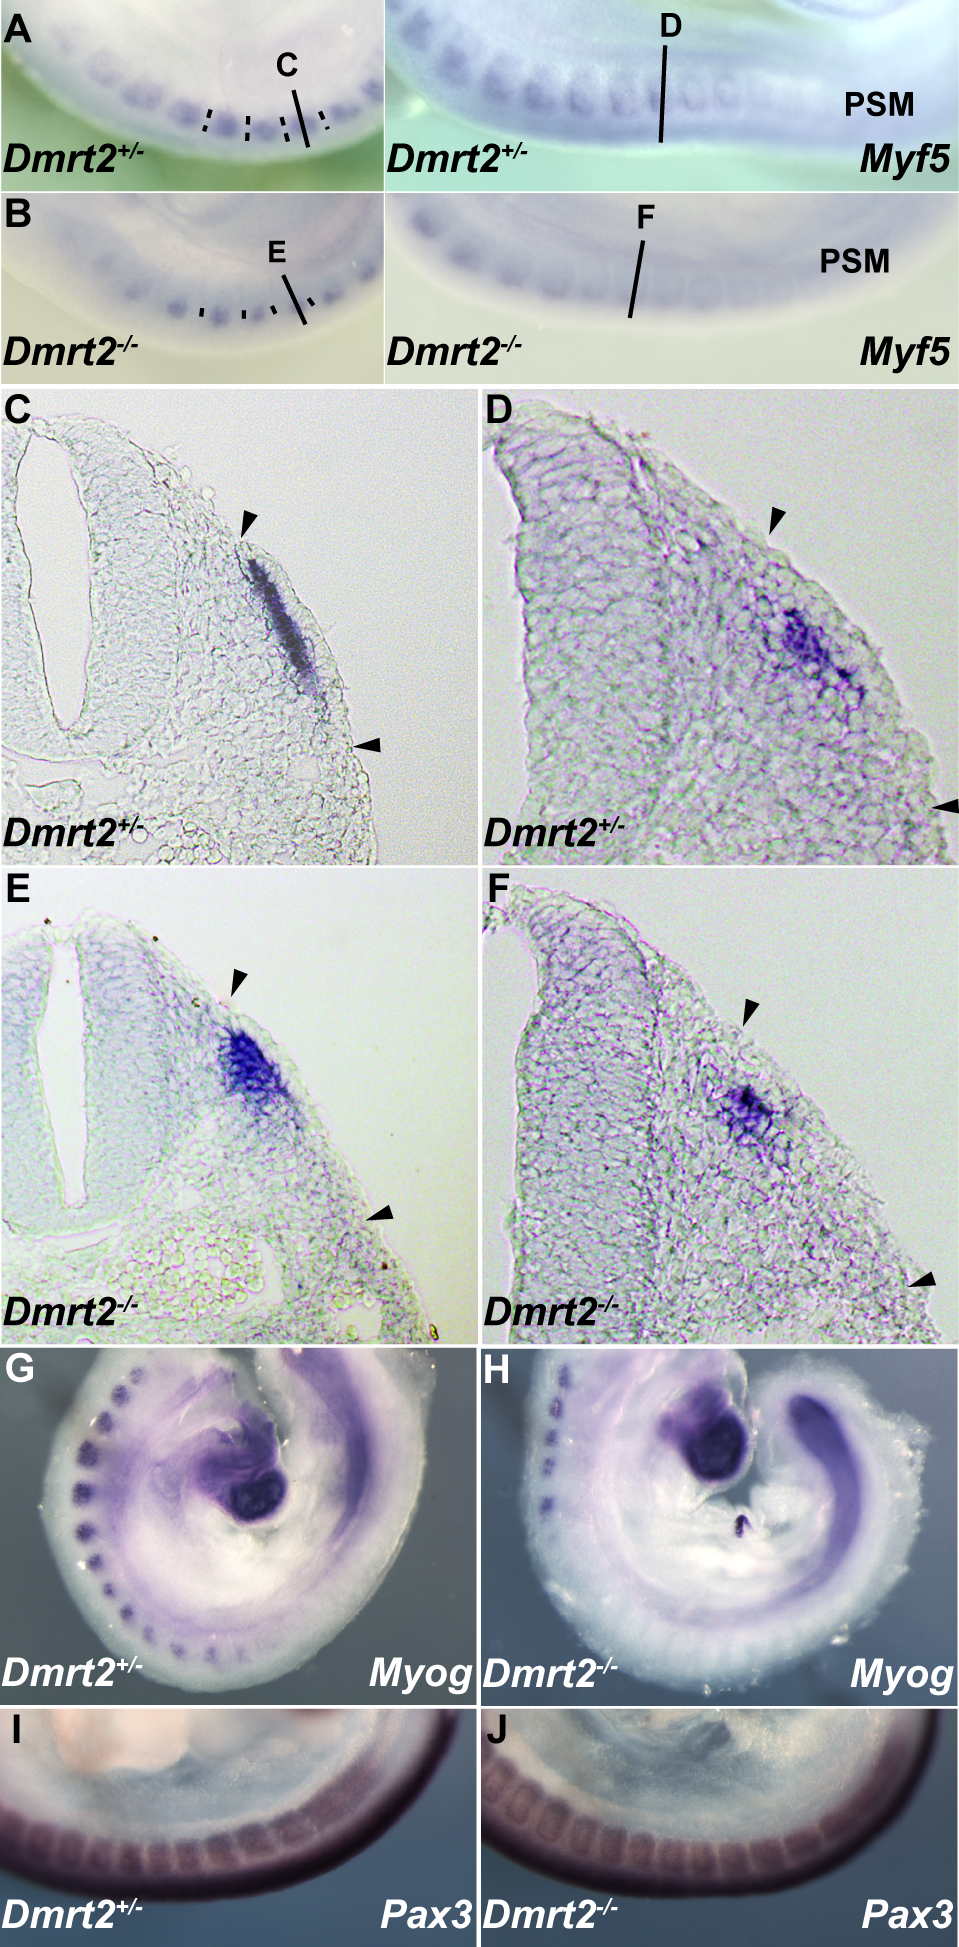 Dmrt2 is required for the maturation of the epaxial somite, where <i>Myf5</i> is first expressed.